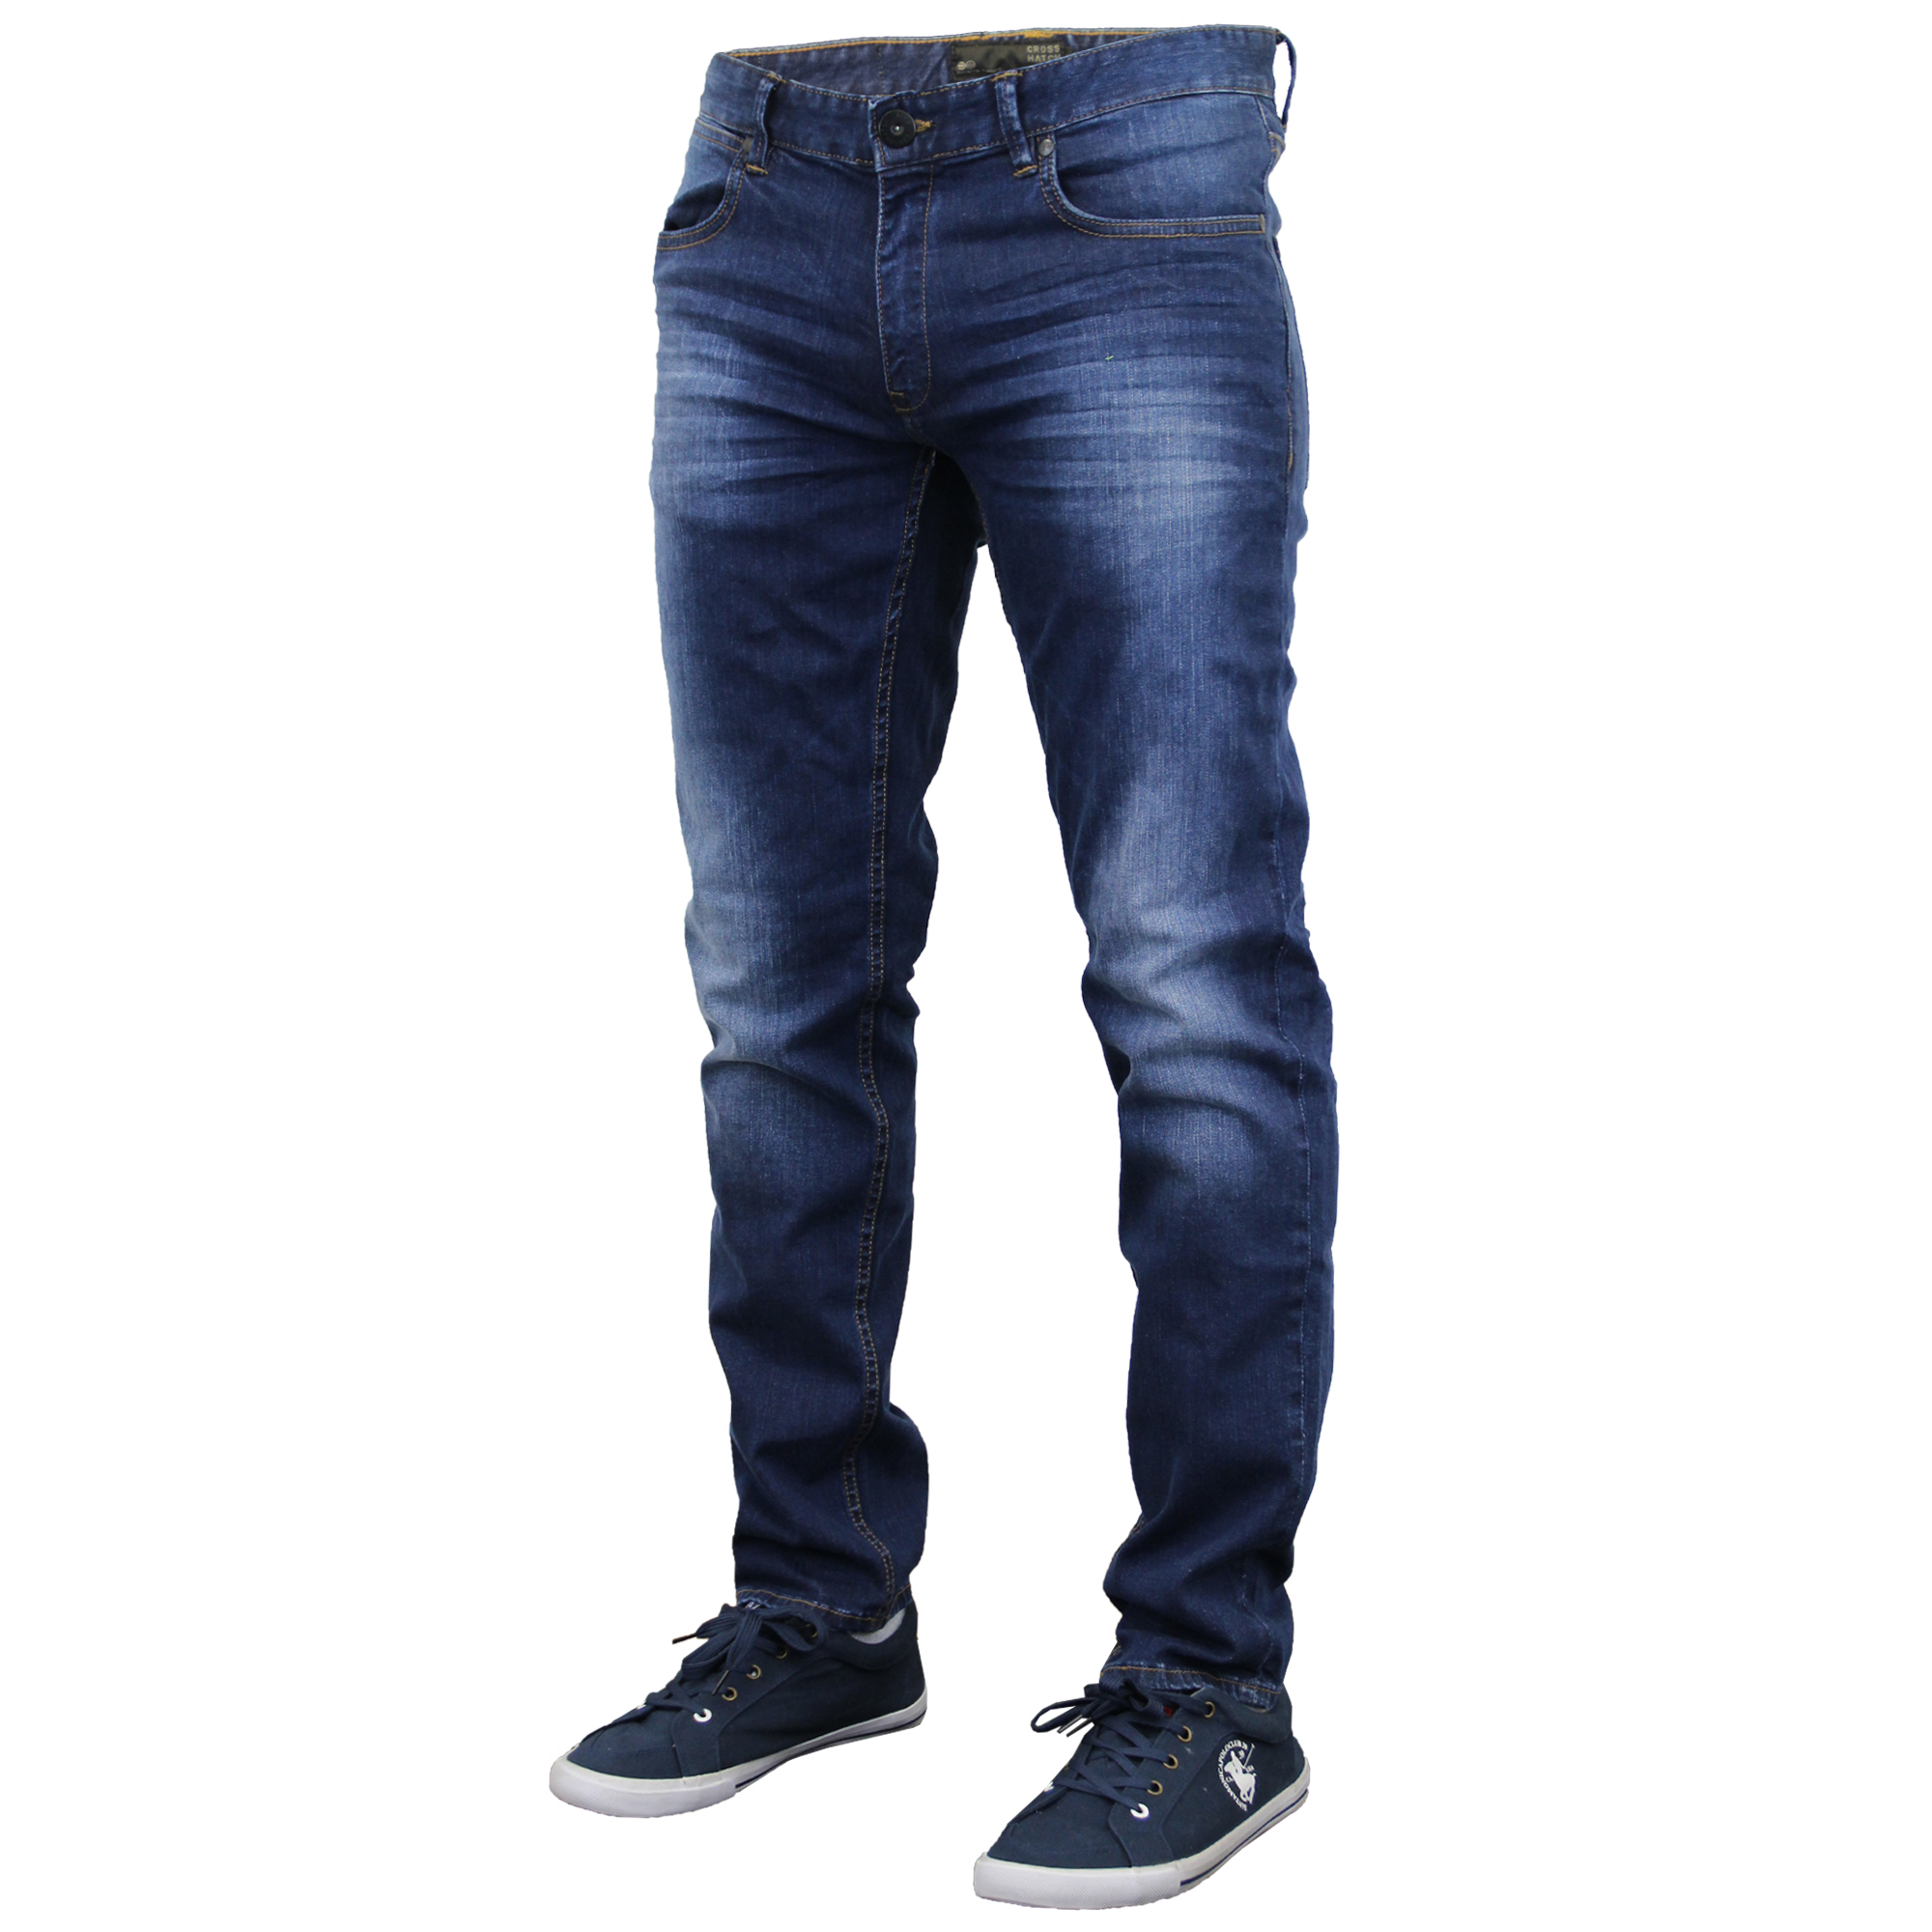 mens denim jeans crosshatch pants slim fit straight leg. Black Bedroom Furniture Sets. Home Design Ideas